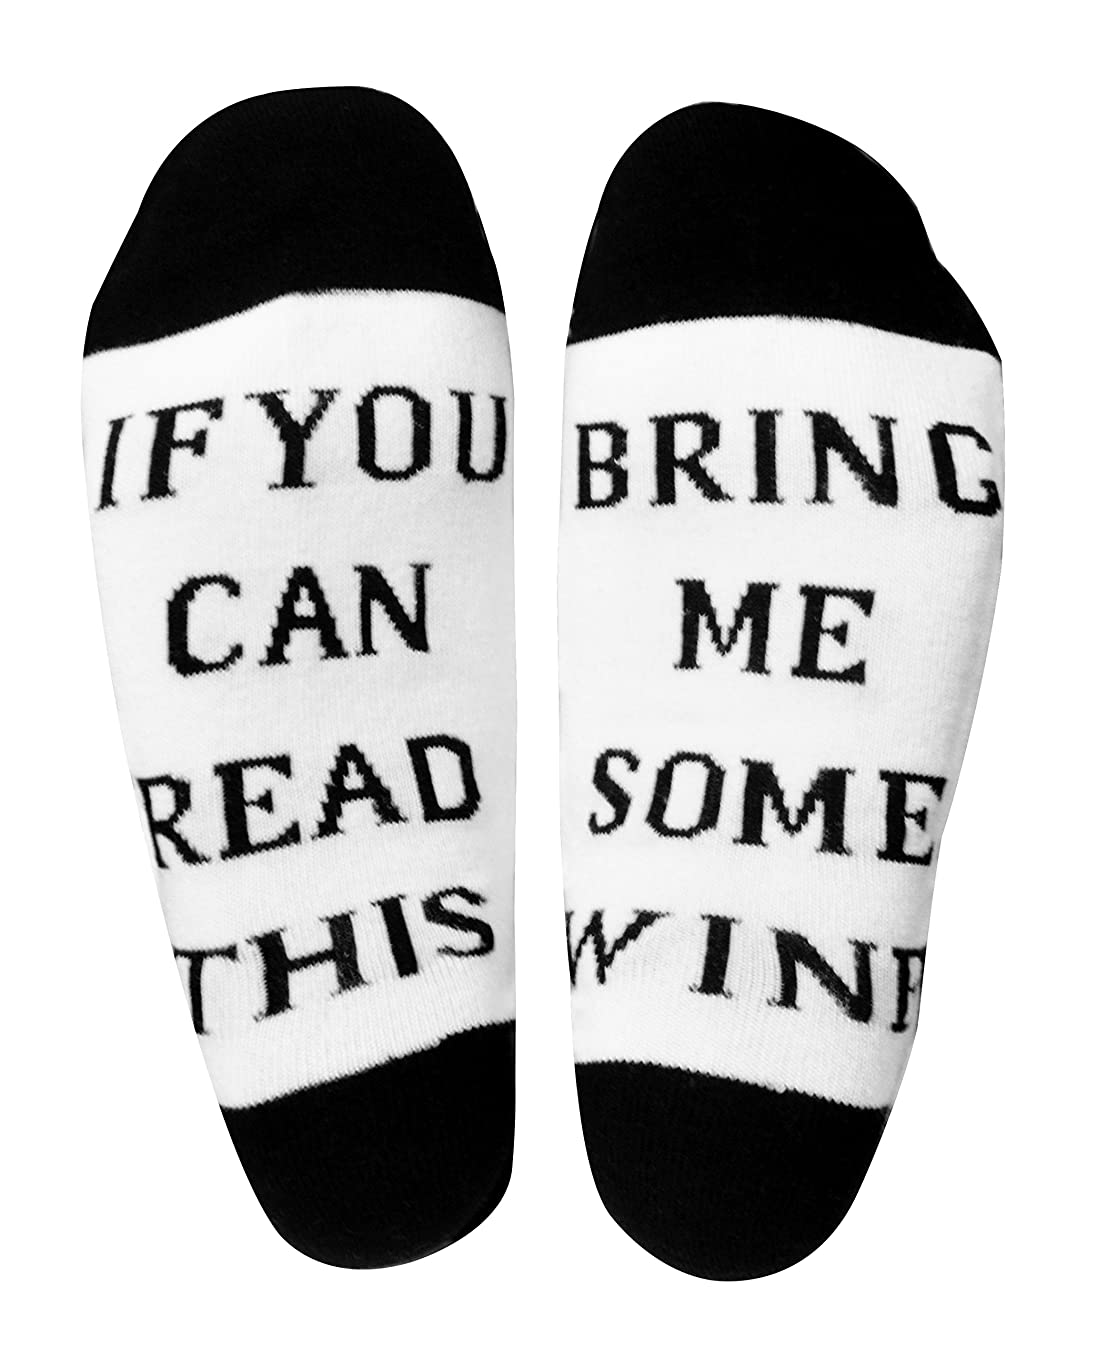 Wine Socks Gifts for Mom/Women/Men/Dad/Wife/Her/Wine Lover If You Can Read This Socks Bring Me Some Wine Cotton Novelty Funny Socks Unique Gift Idea for Birthday Hostess Housewarming Mom Gifts (White)